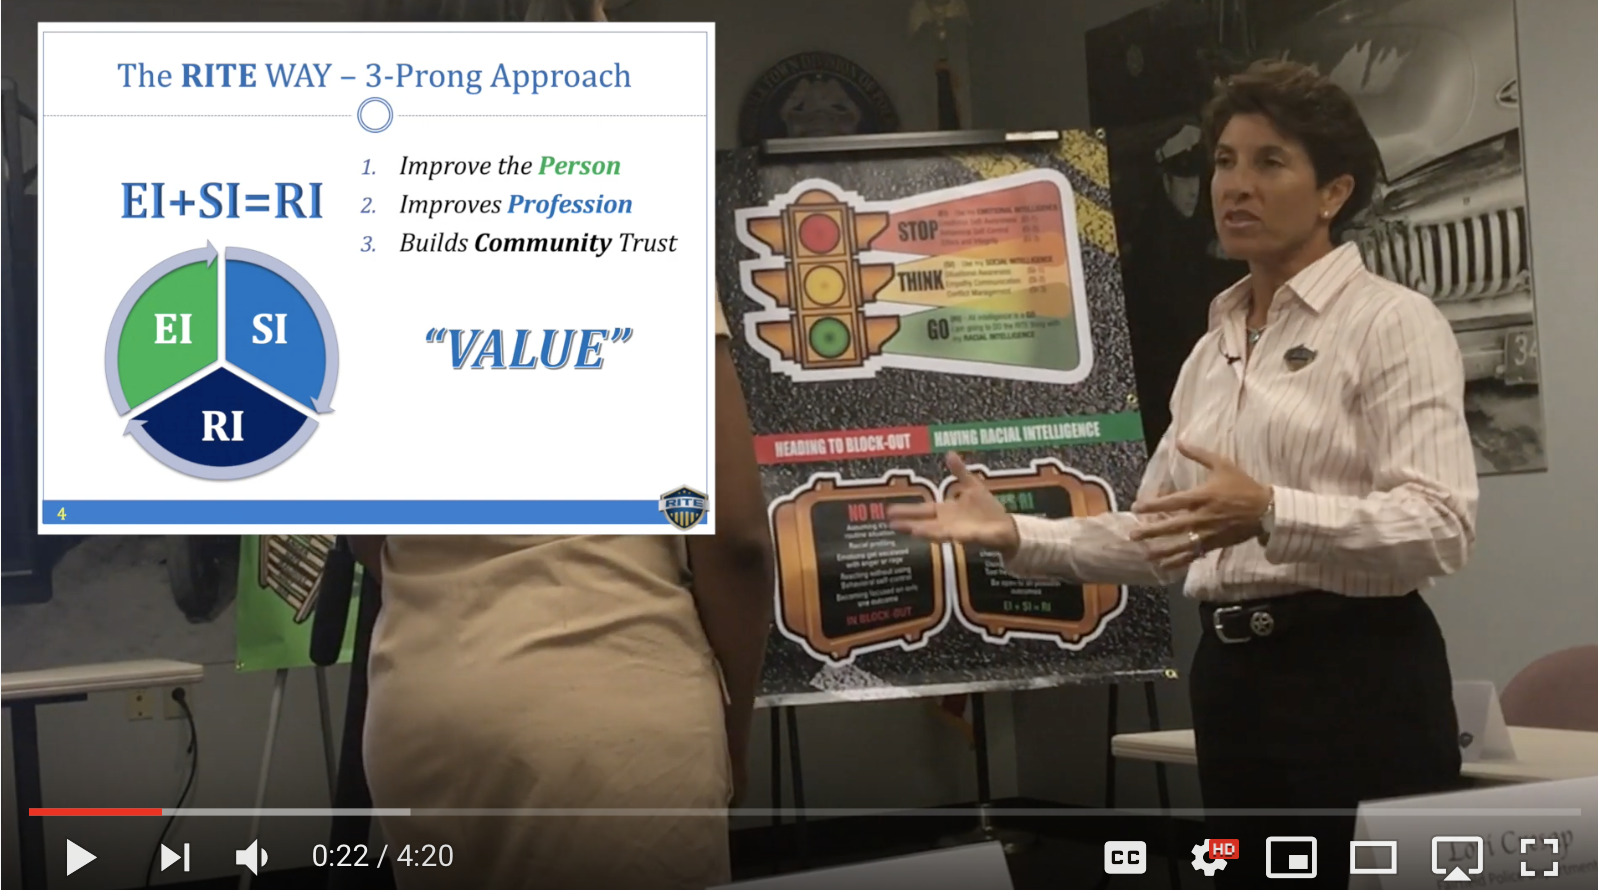 Randy Friedman explains 3 prong approach